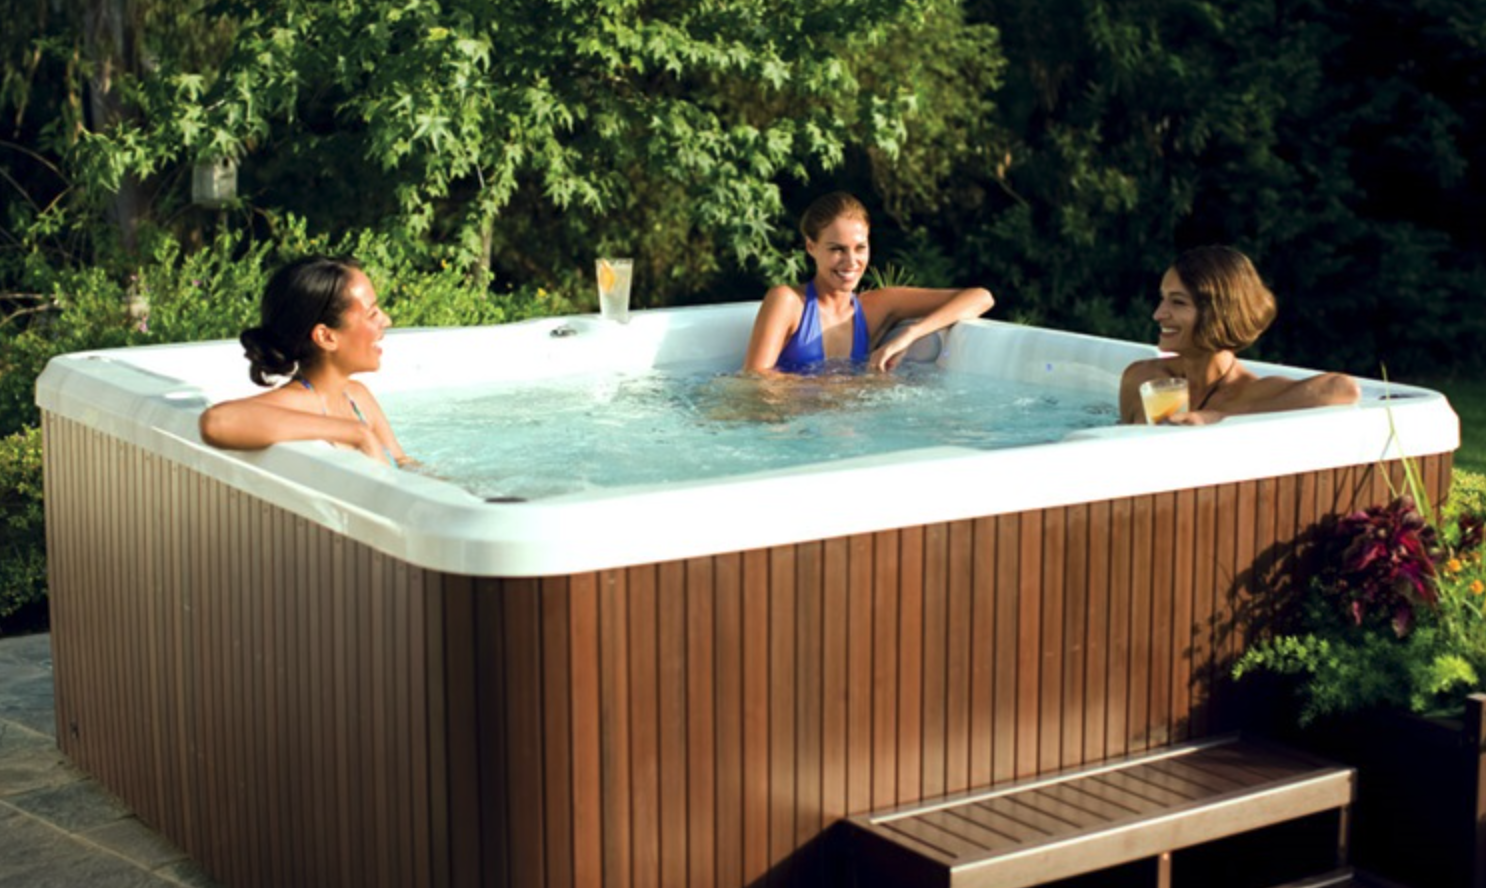 Superb Jacuzzi J Whirlpool Sitze Lounge Jets Clear Ray Technologie